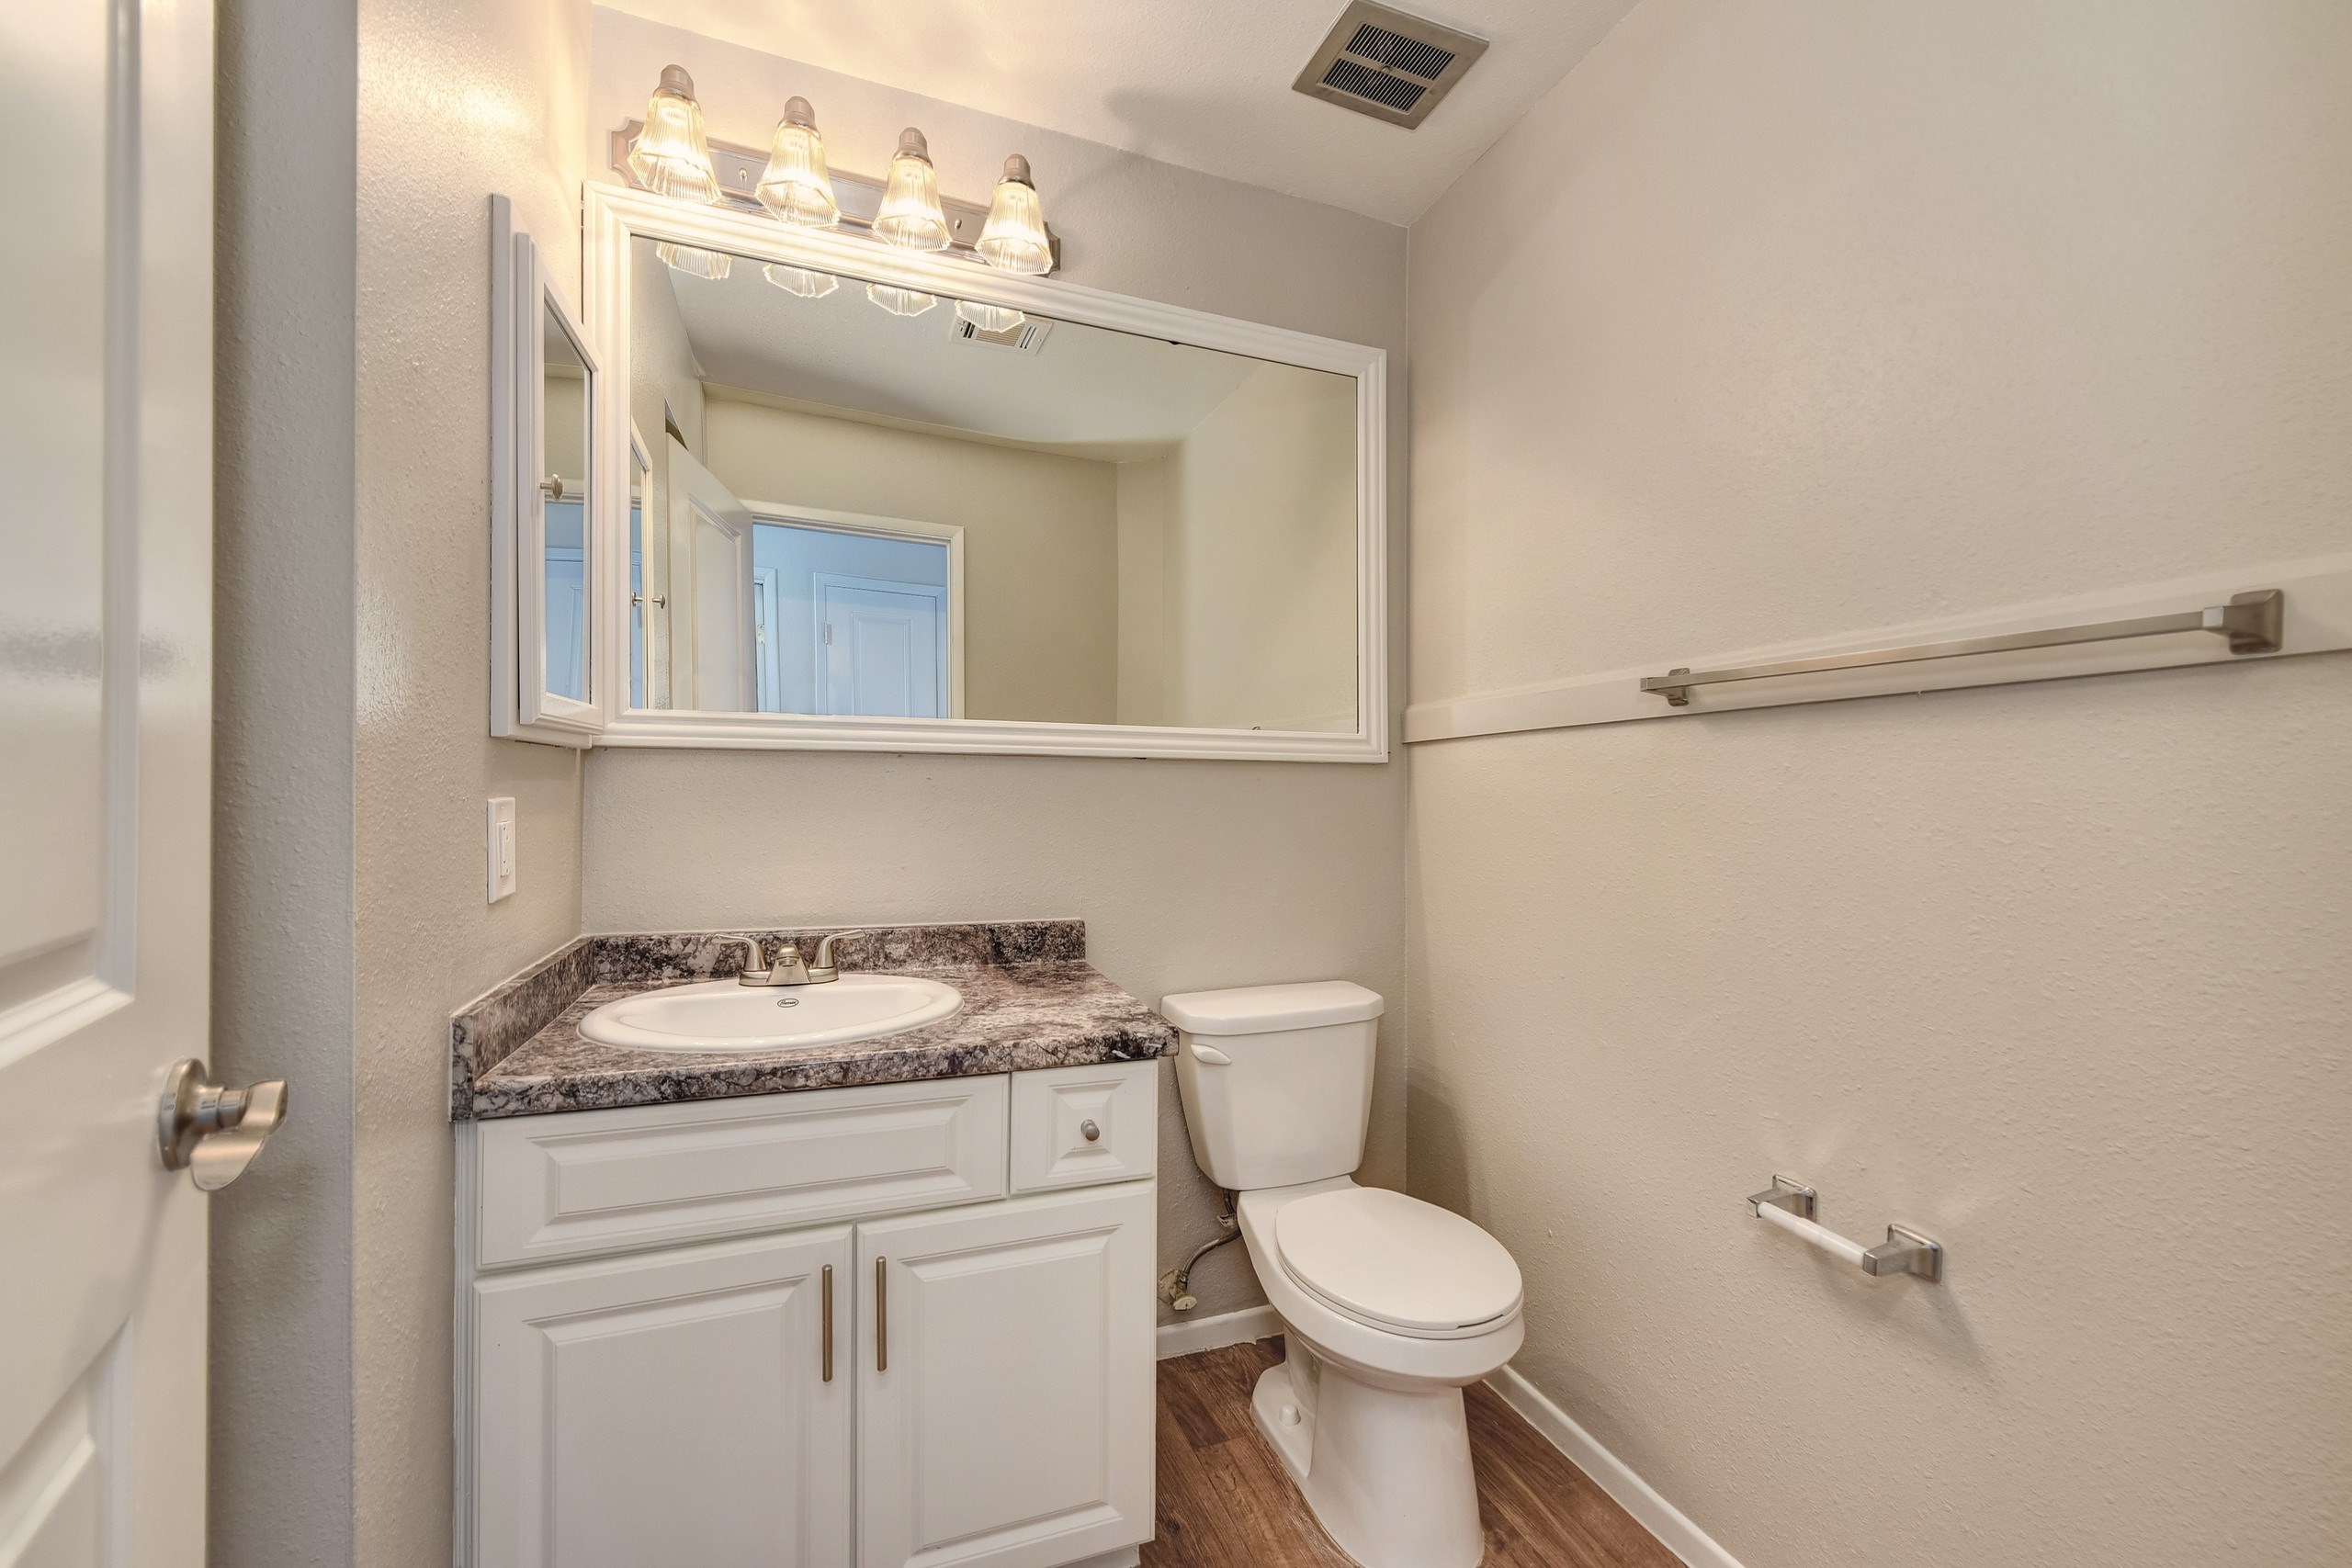 Two Bedroom Bathroom #1, white cabinetry and large mirror